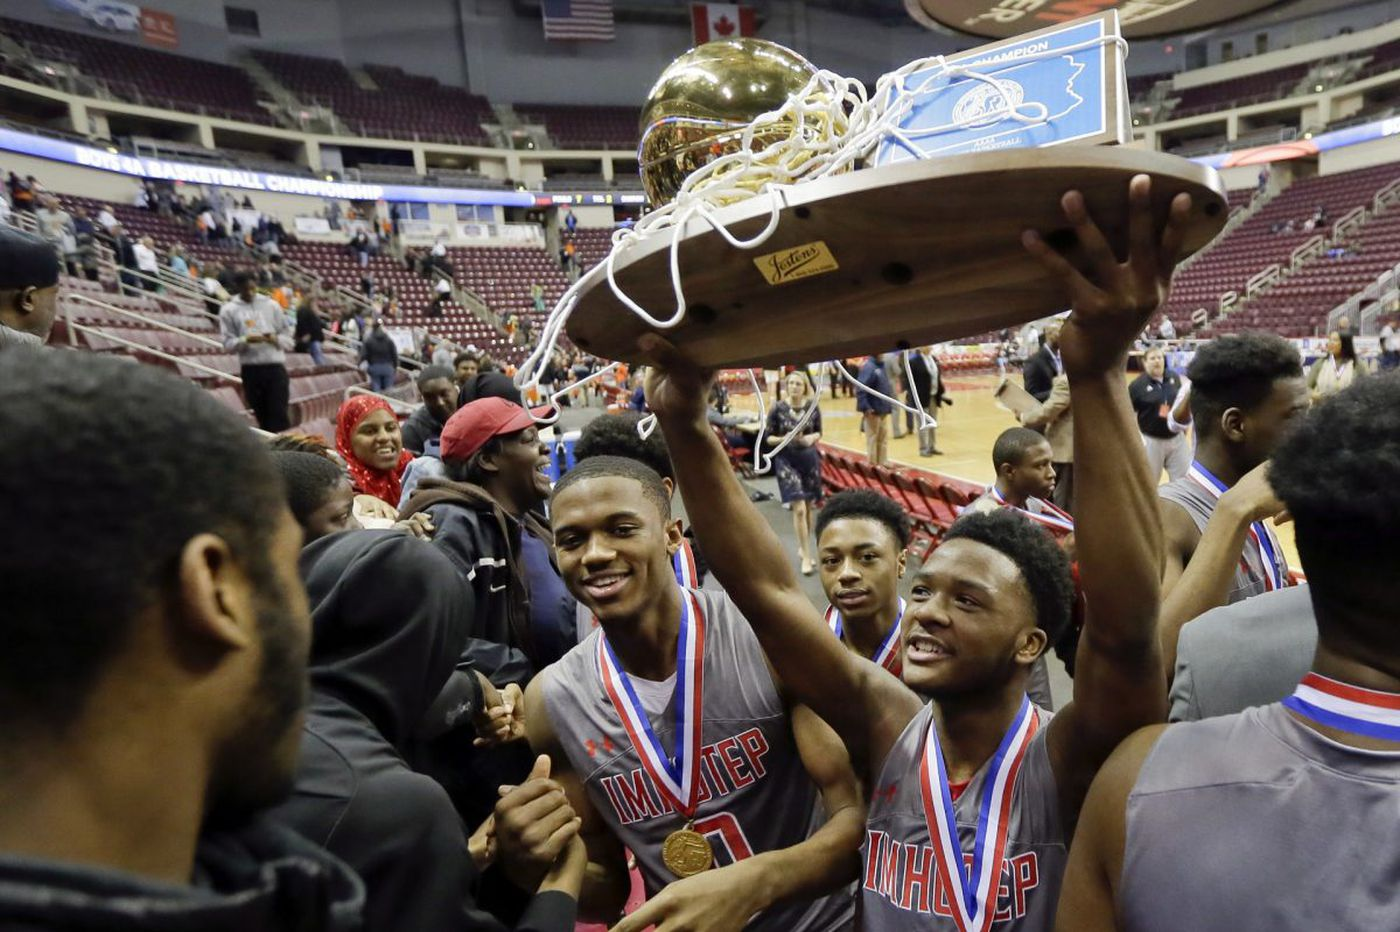 Why Imhotep basketball should be appreciated, respected | Aaron Carter